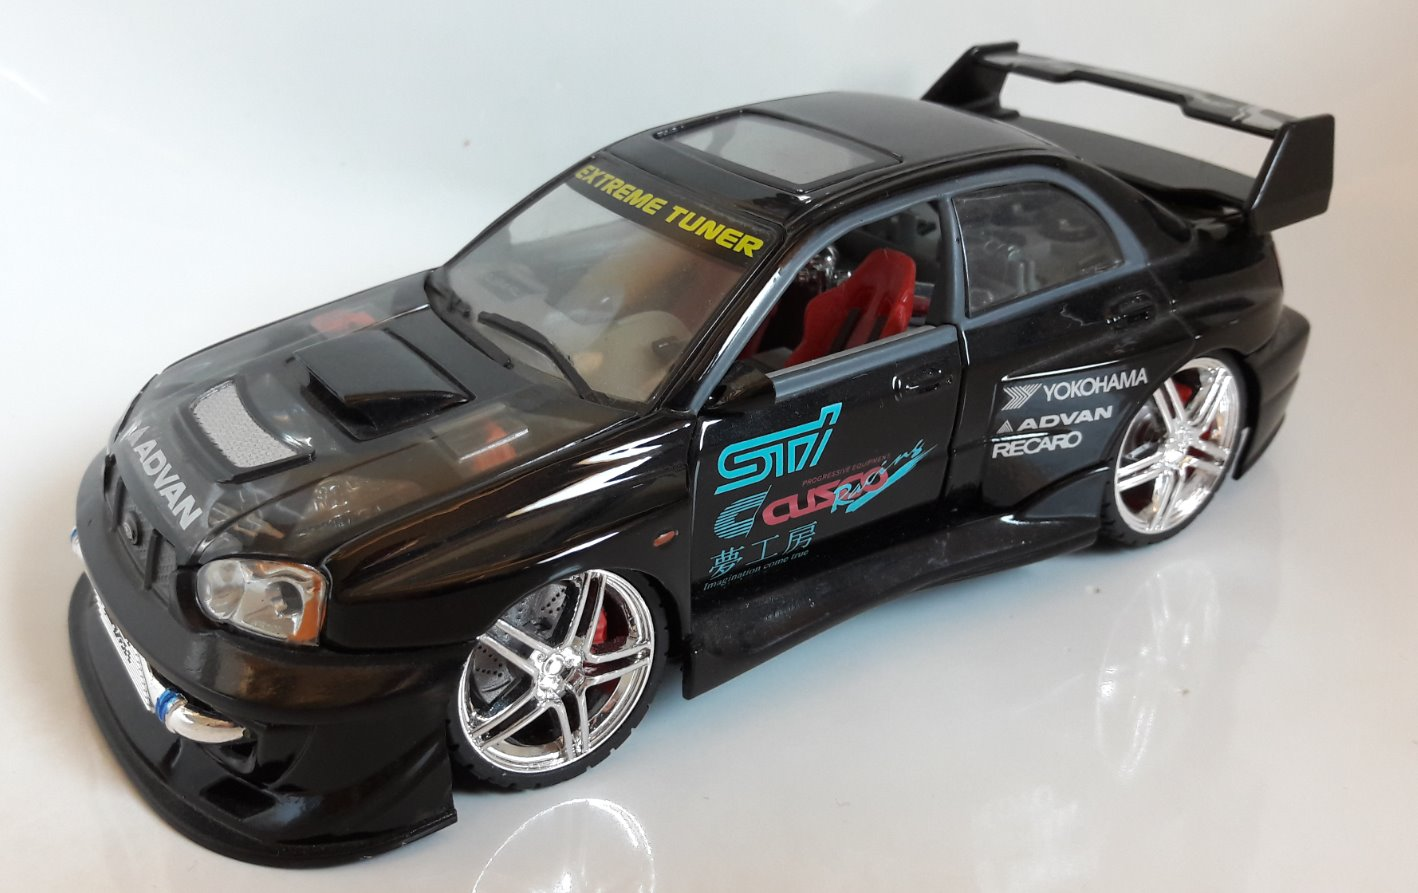 Subaru Impreza STI Toy Car, Die Cast, And Hot Wheels front image (front cover)